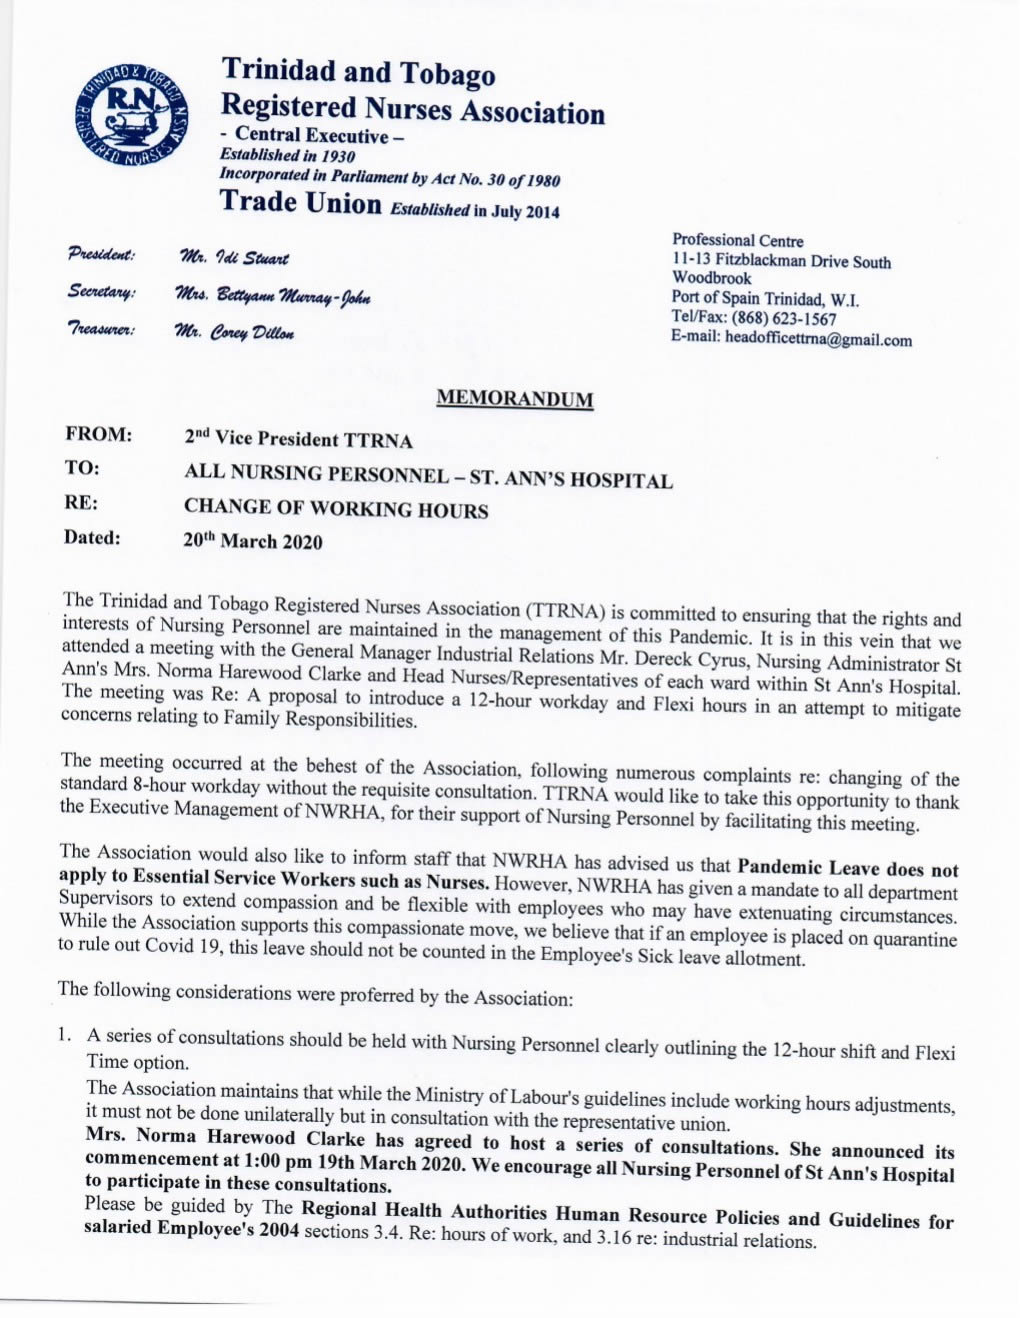 SAH Change in Working Hours Memorandum 1